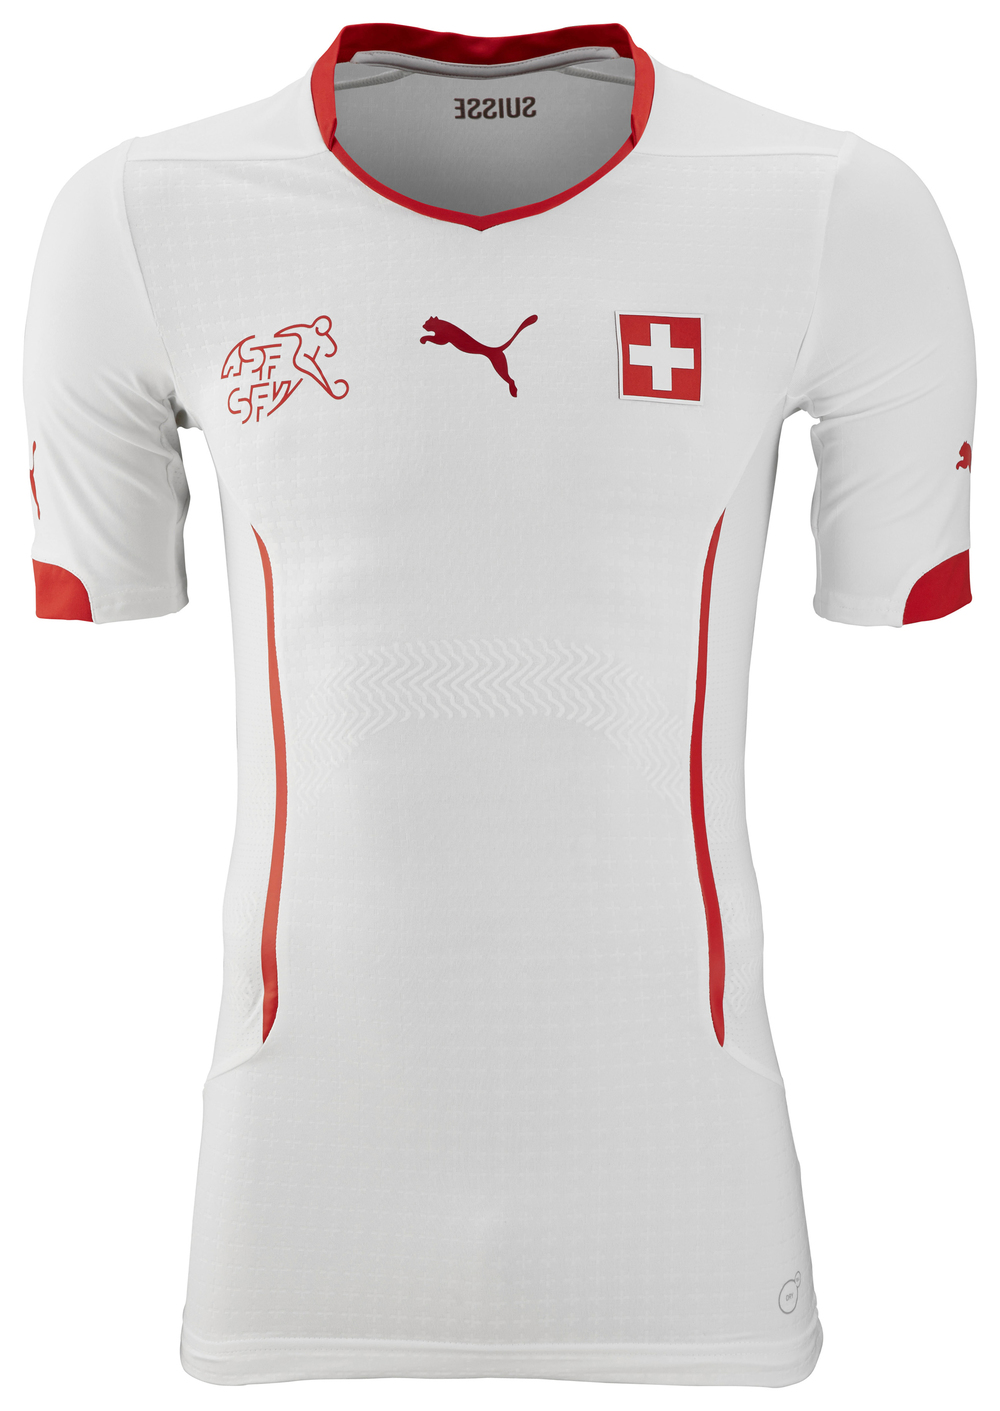 SS14 Switzerland Away Promo ACTV Shirt_744354_02.jpg